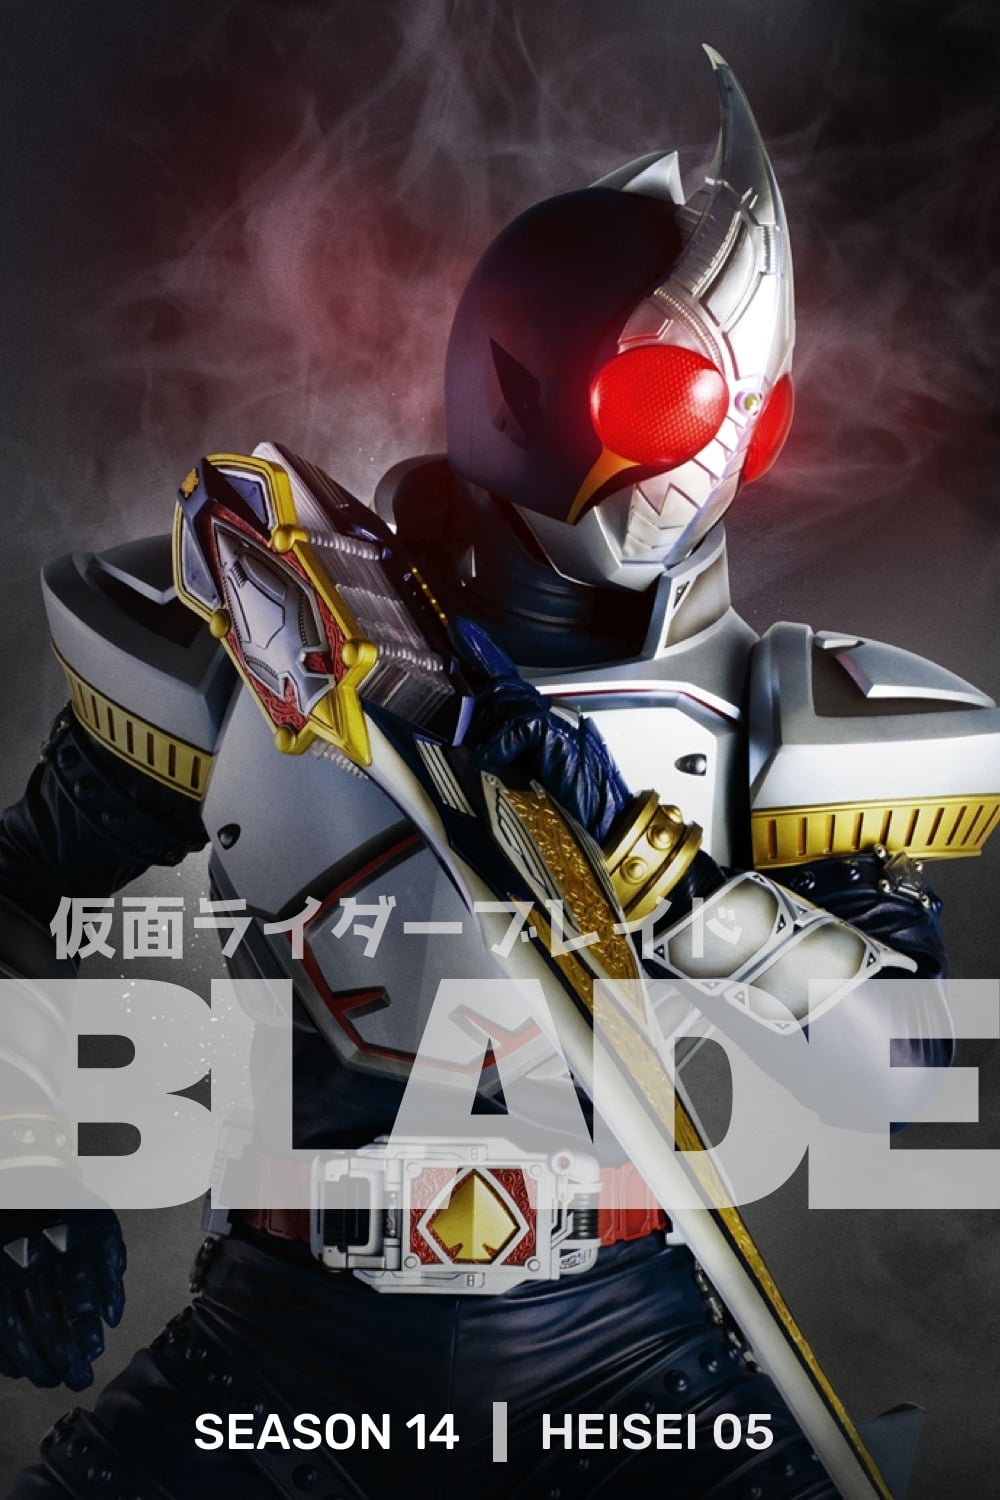 Kamen Rider - Season 21 Episode 2 : Greed, Ice Candy, Present Season 14